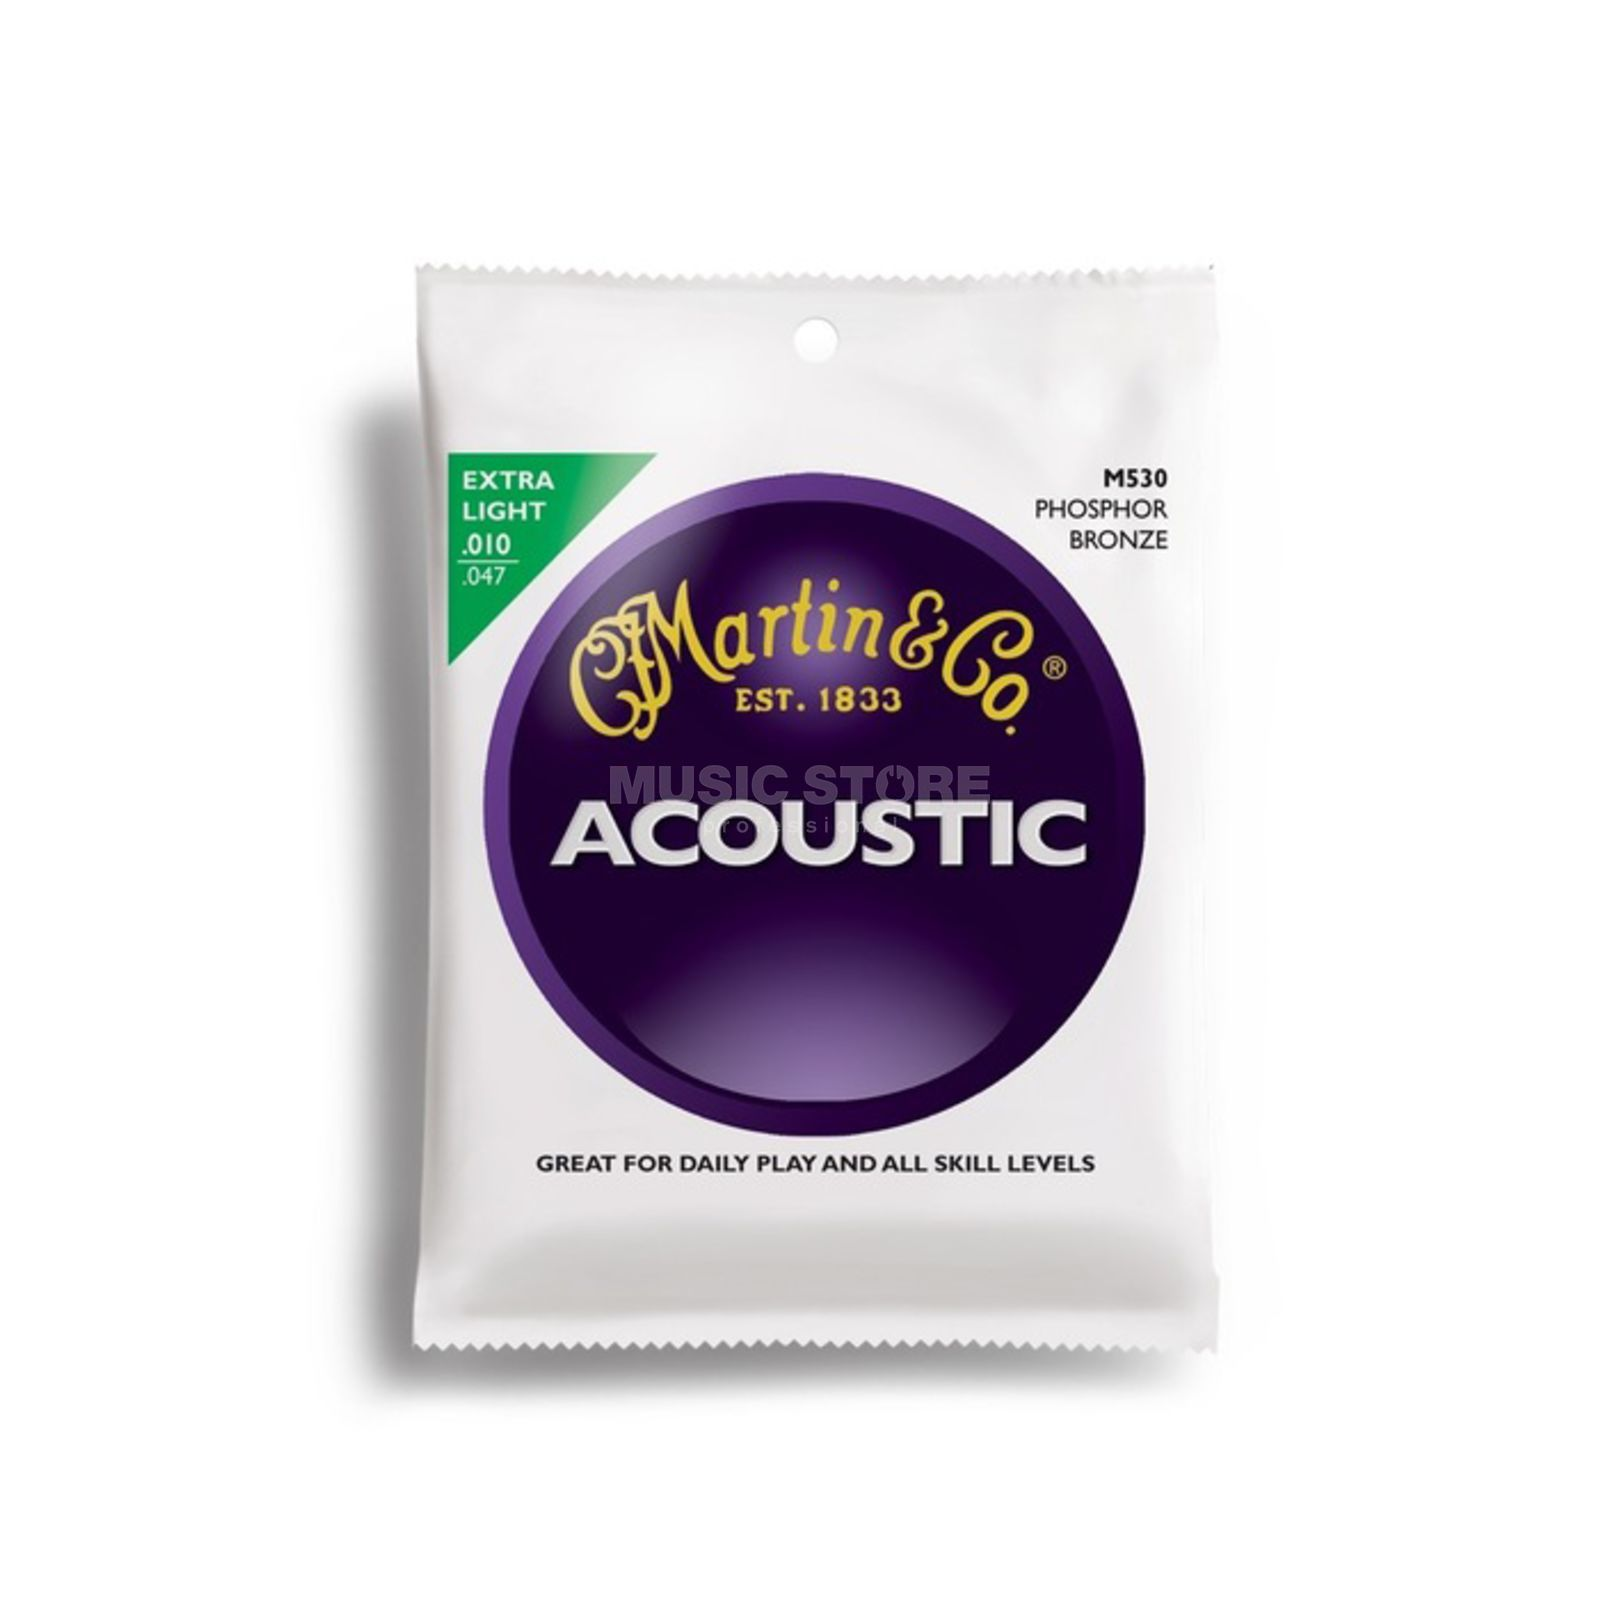 Martin Guitars A-Guitar Strings 10-47 M530 Phosphor Bronze Product Image